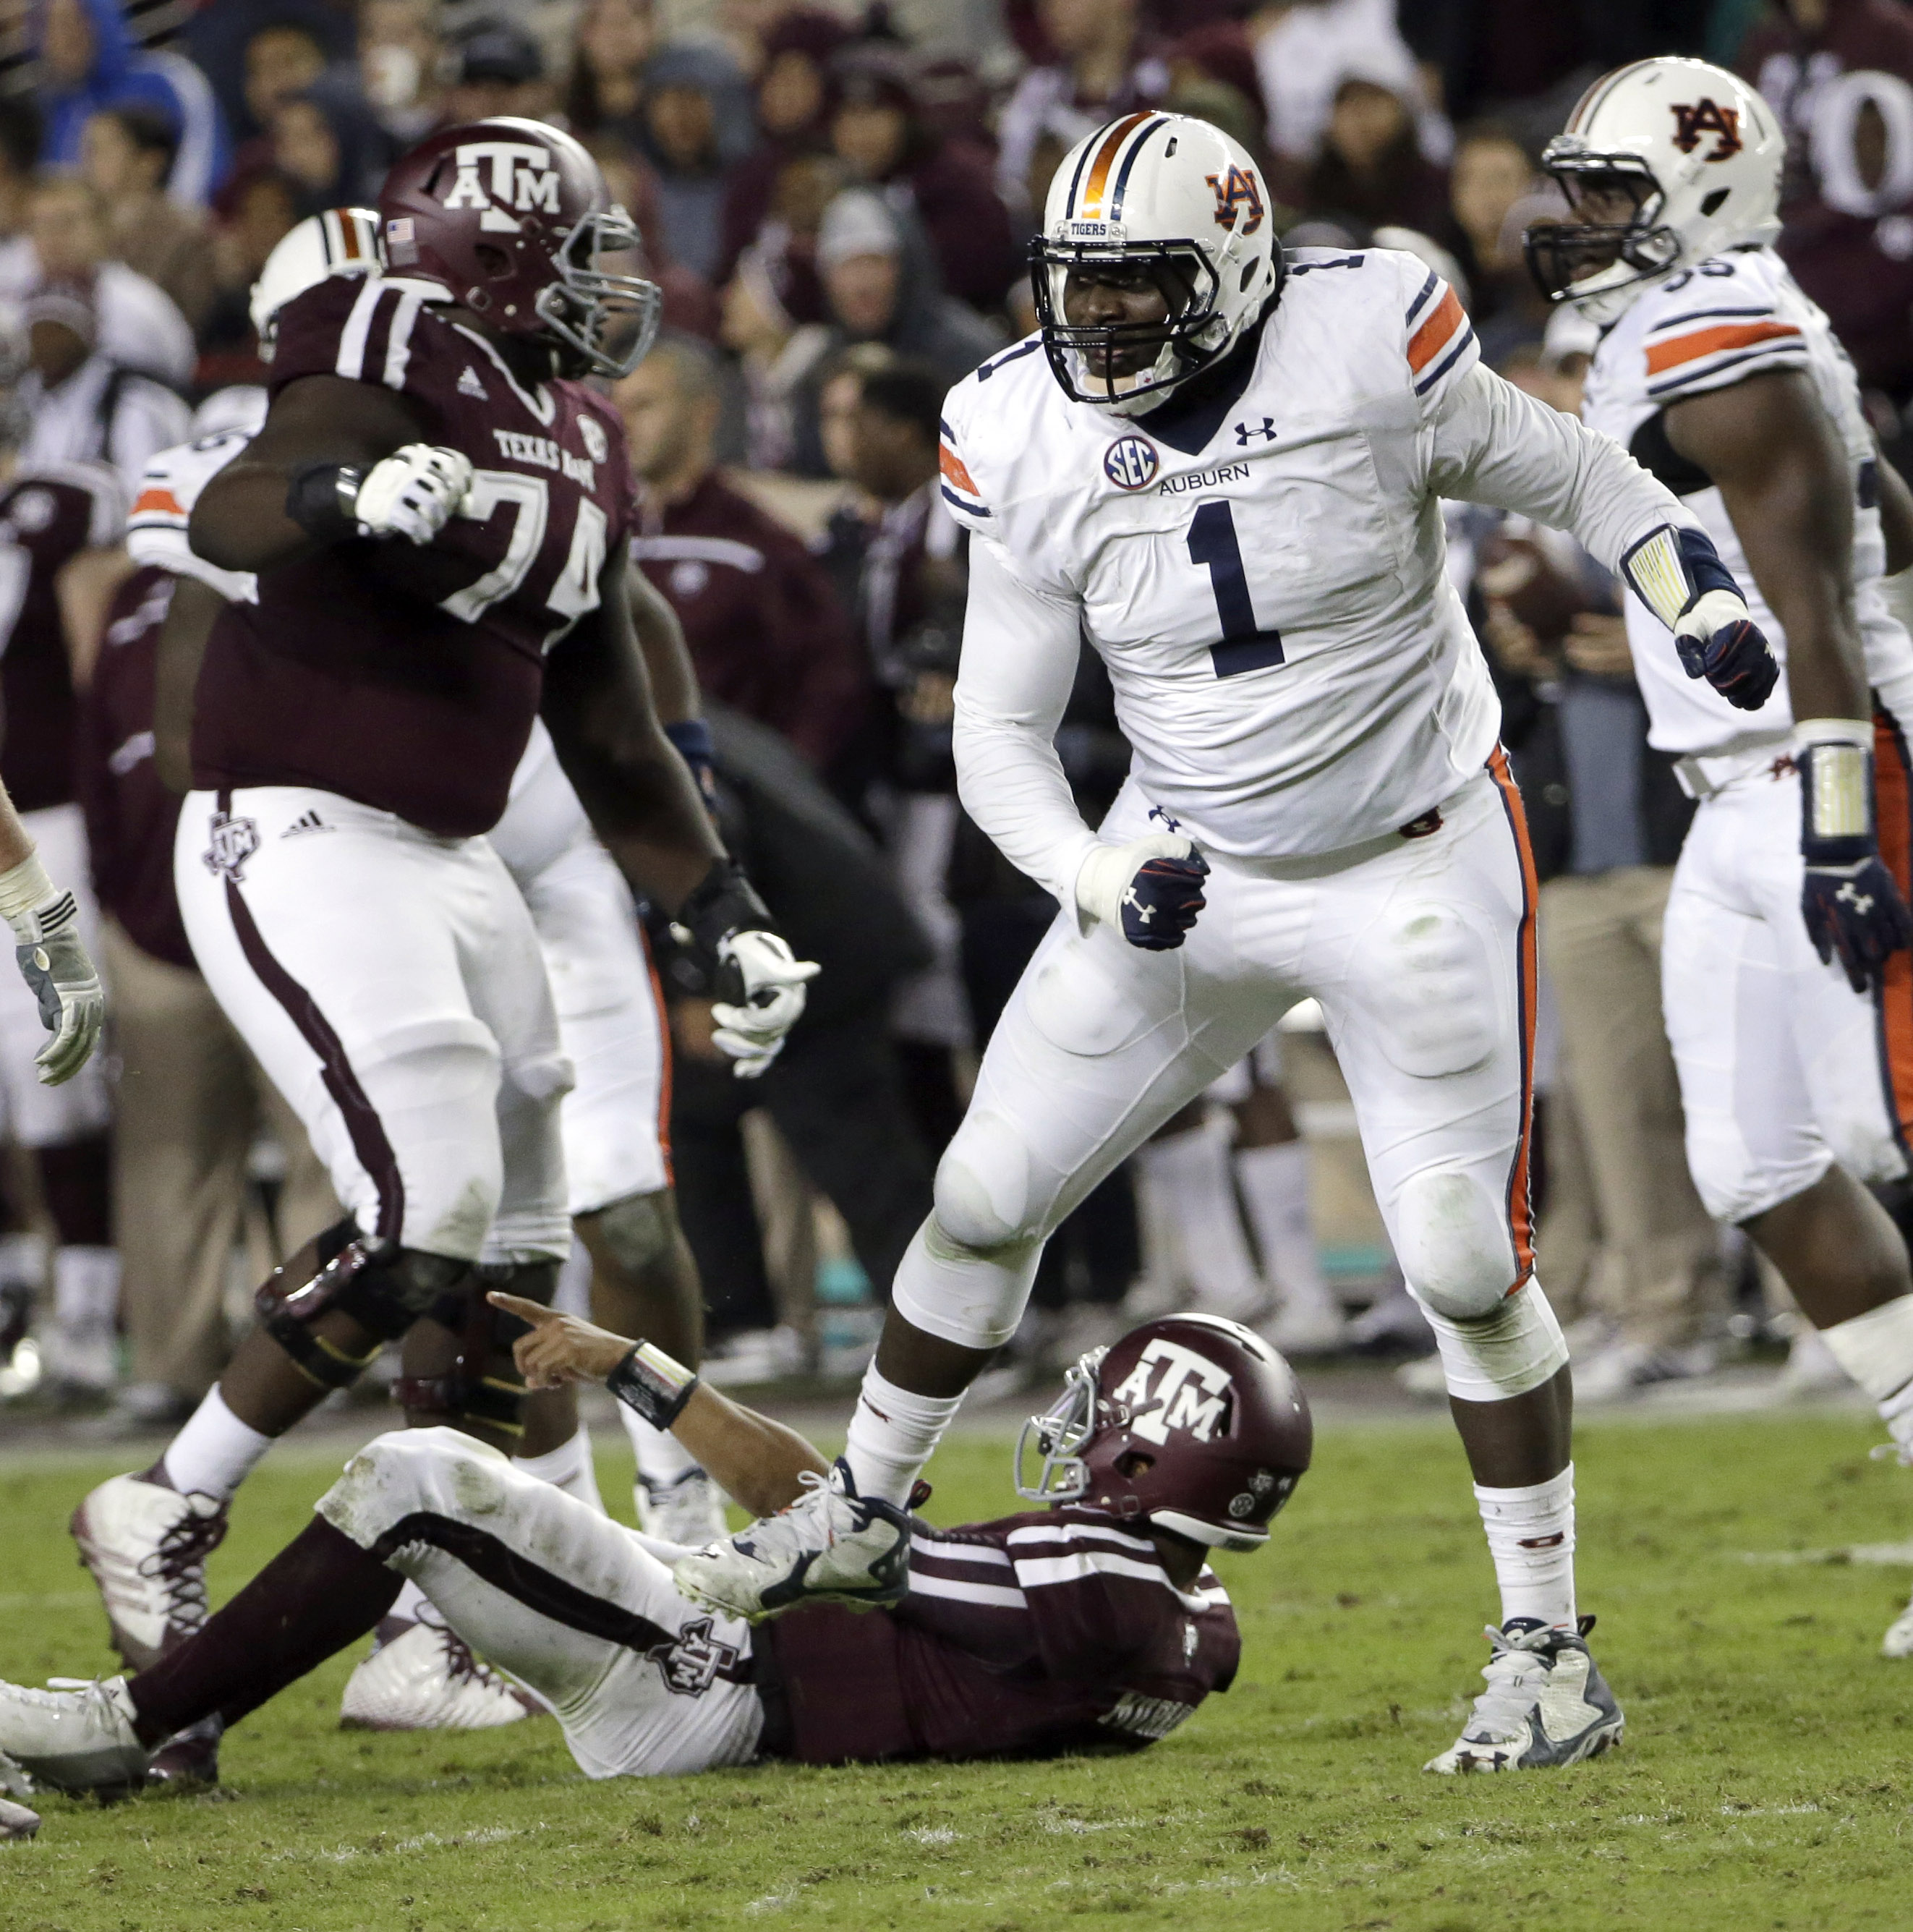 Auburn defensive tackle Montravius Adams (1) celebrates after sacking Texas A&M quarterback Kyler Murray, bottom, during the second quarter of an NCAA college football game Saturday, Nov. 7, 2015, in College Station, Texas. (AP Photo/David J. Phillip)